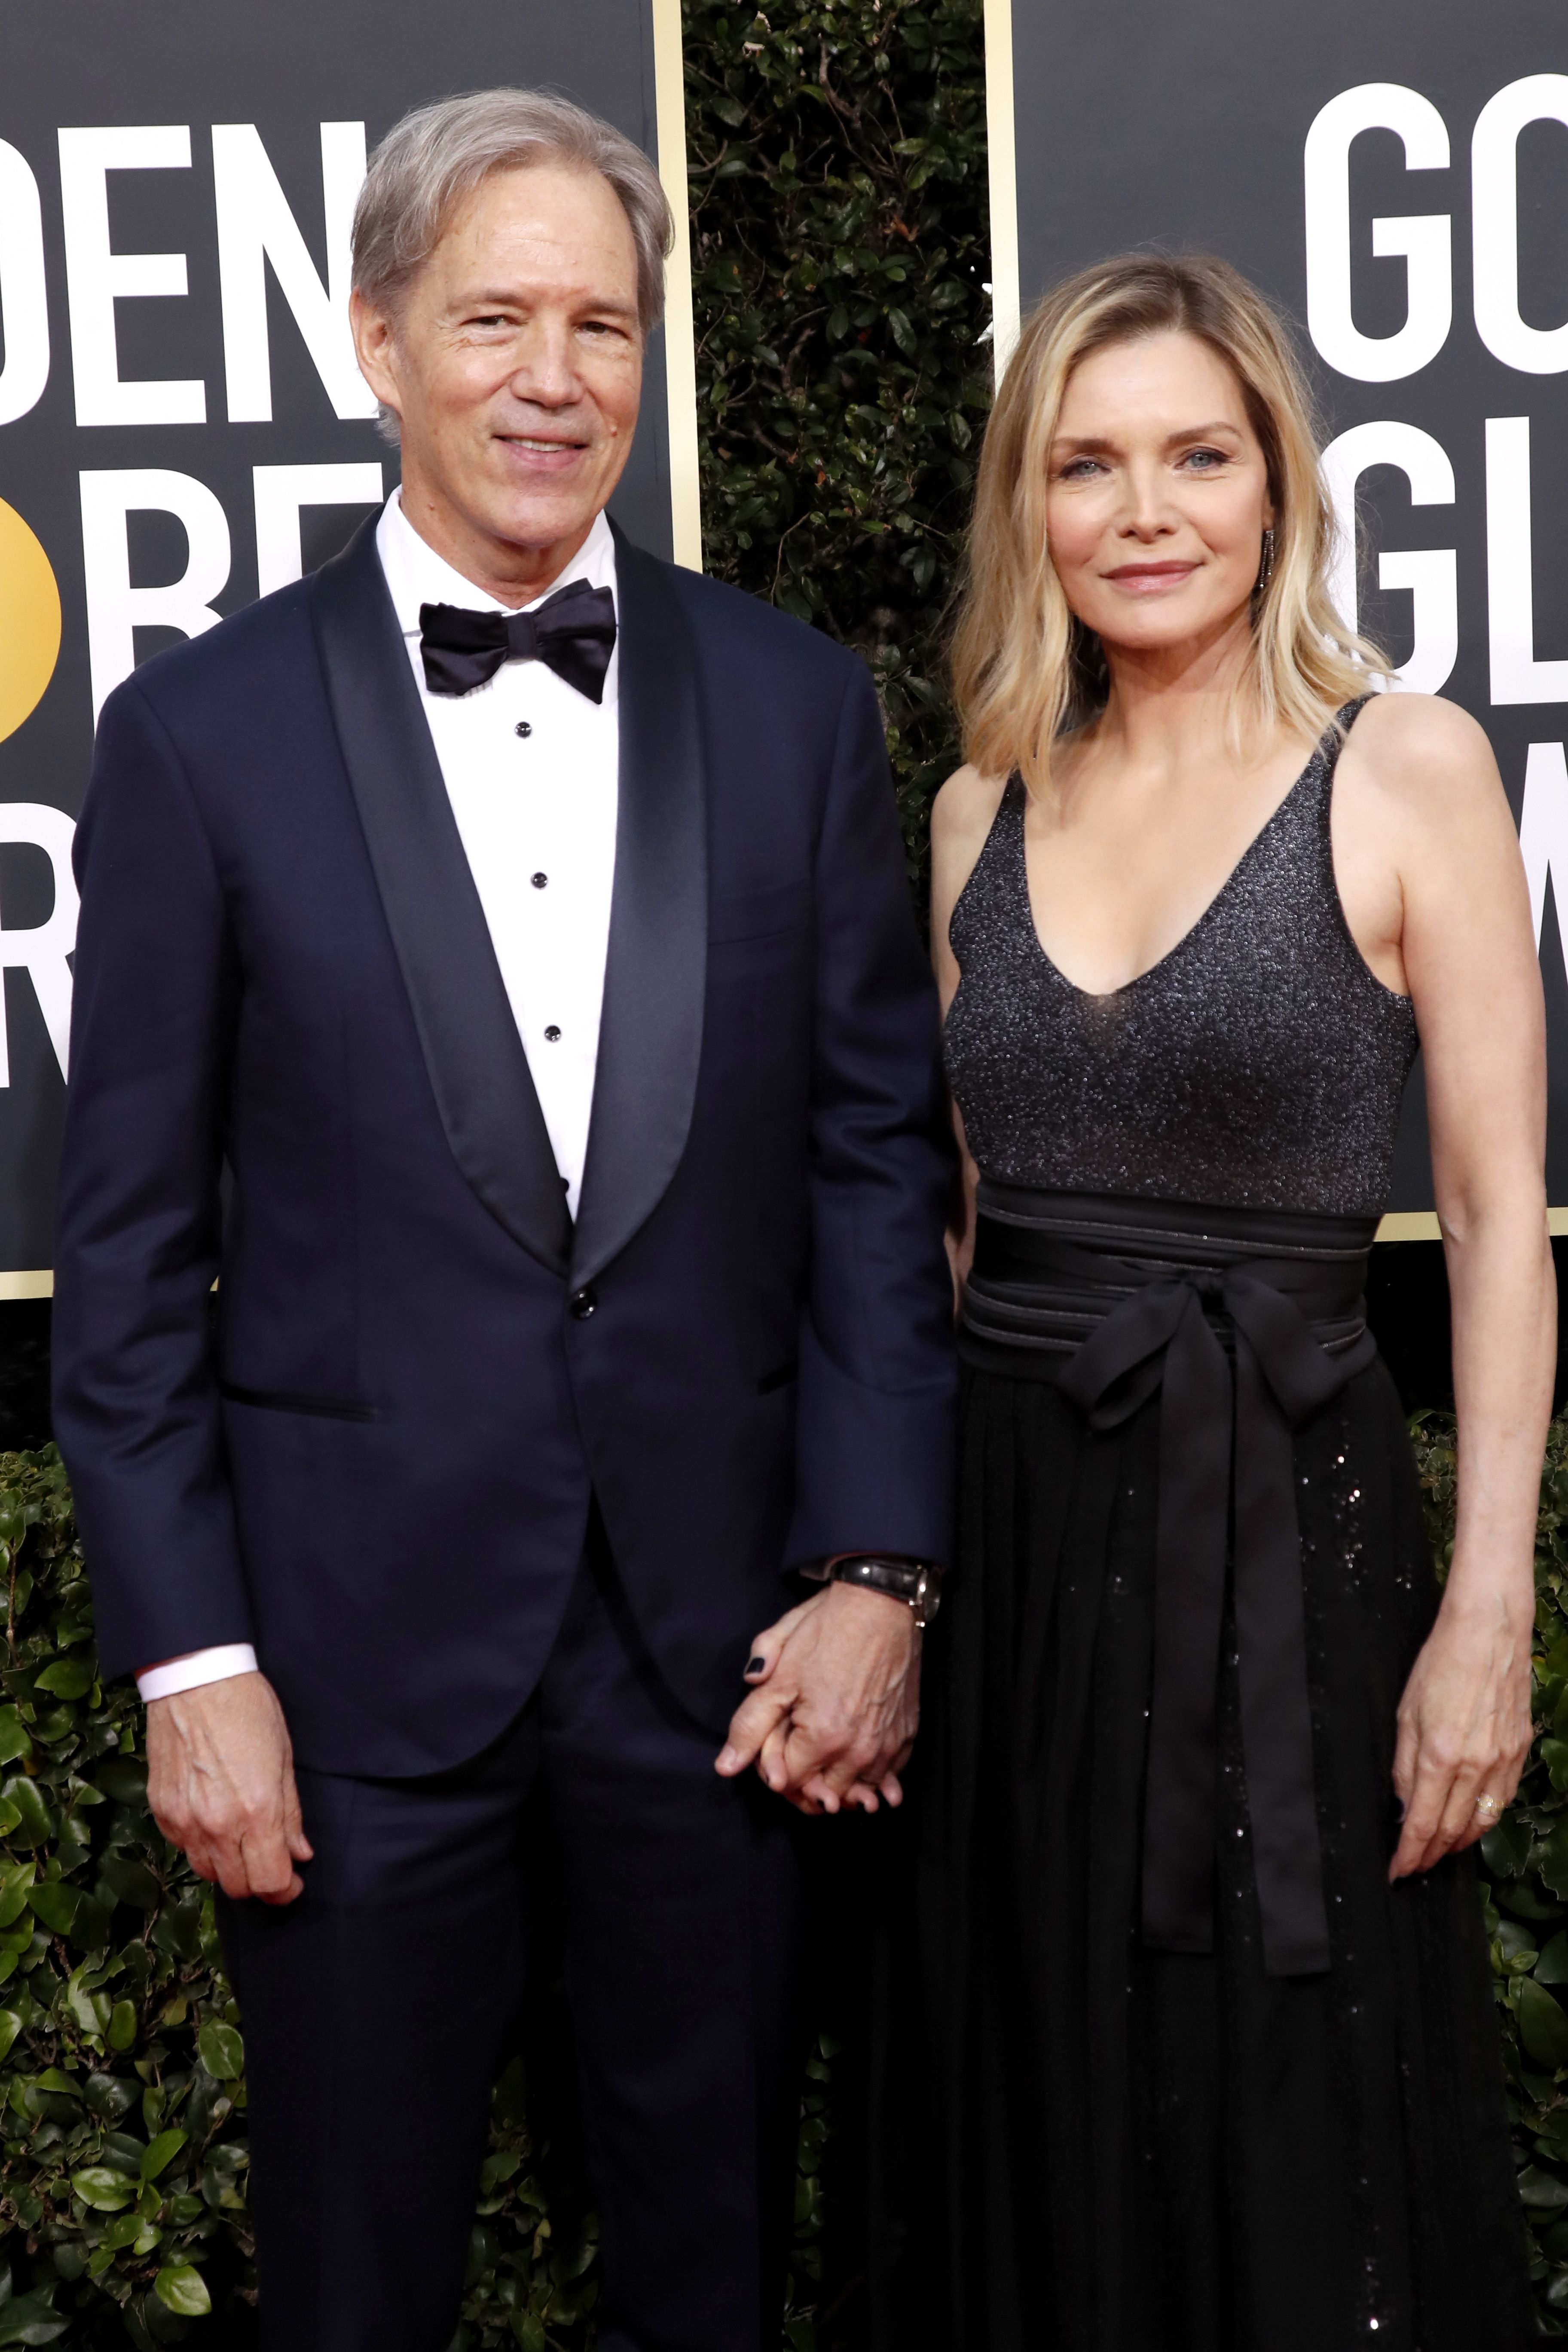 Michelle Pfeiffer and David E. Kelley arrive for the 77th annual Golden Globe Awards ceremony at the Beverly Hilton Hotel, in Beverly Hills, California, USA, 05 January 2020.Arrivals - 77th Golden Globe Awards, Beverly Hills, USA - 05 Jan 2020